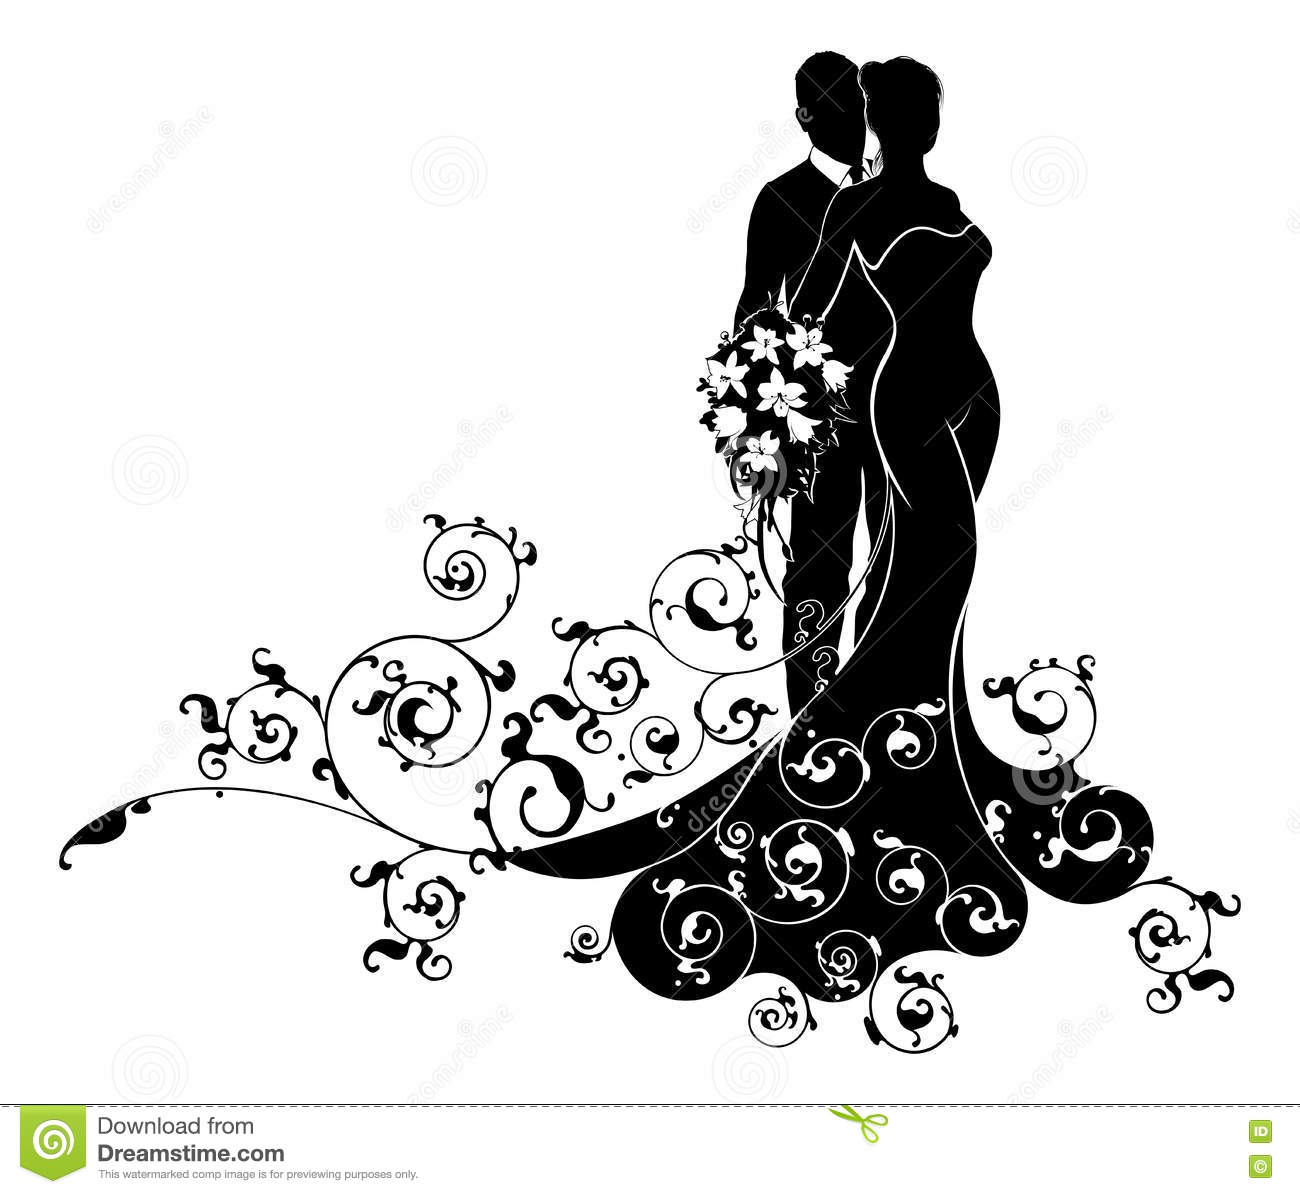 Bride And Groom Wedding Abstract Dress Silhouette Stock